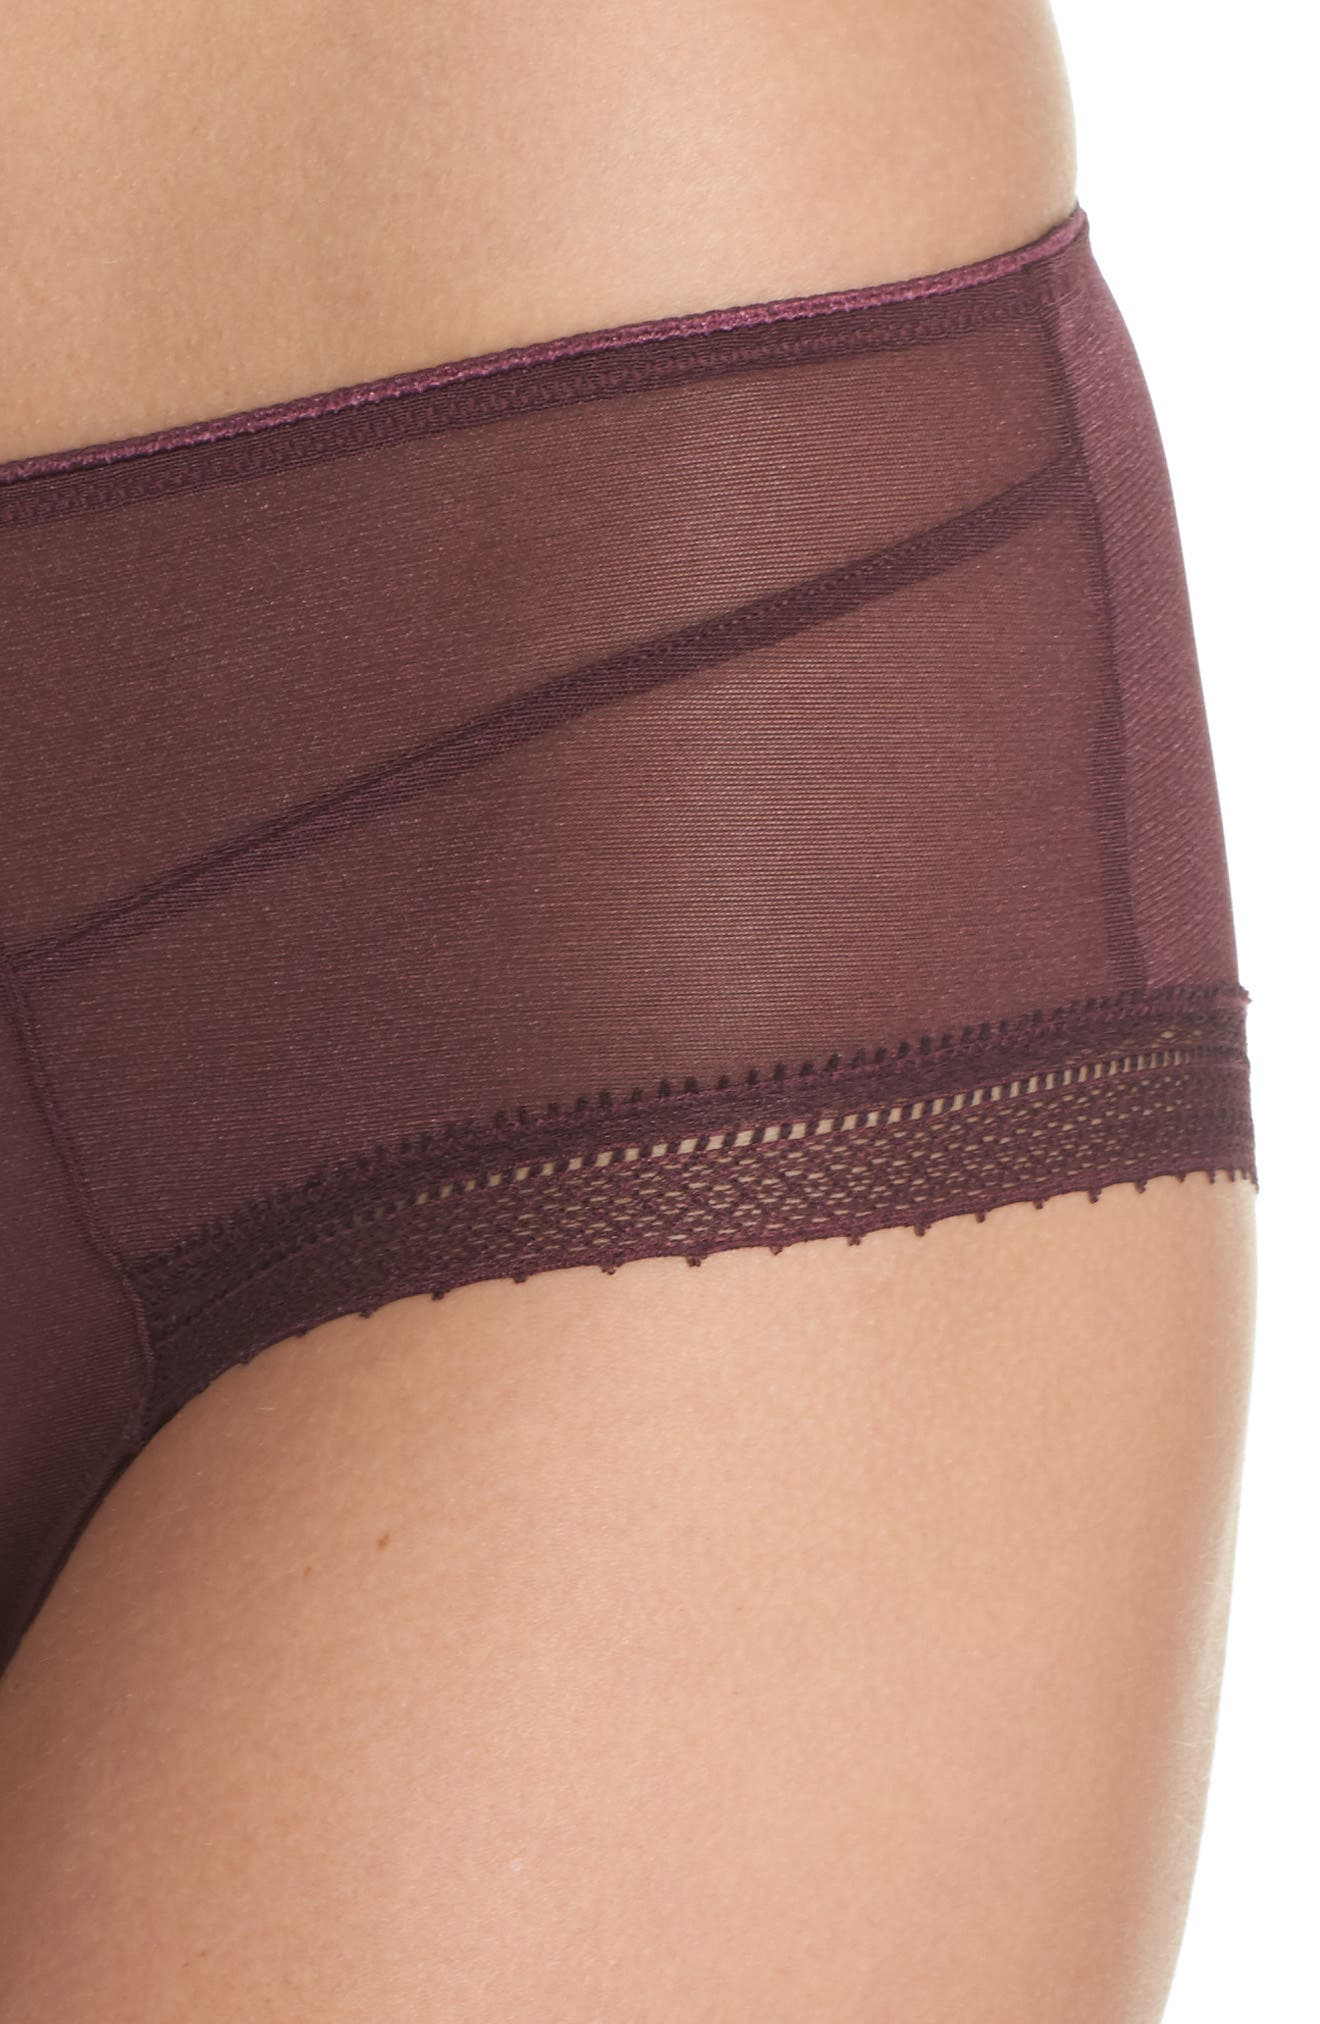 Jet Set Hipster Panties,                             Alternate thumbnail 6, color,                             Garnet